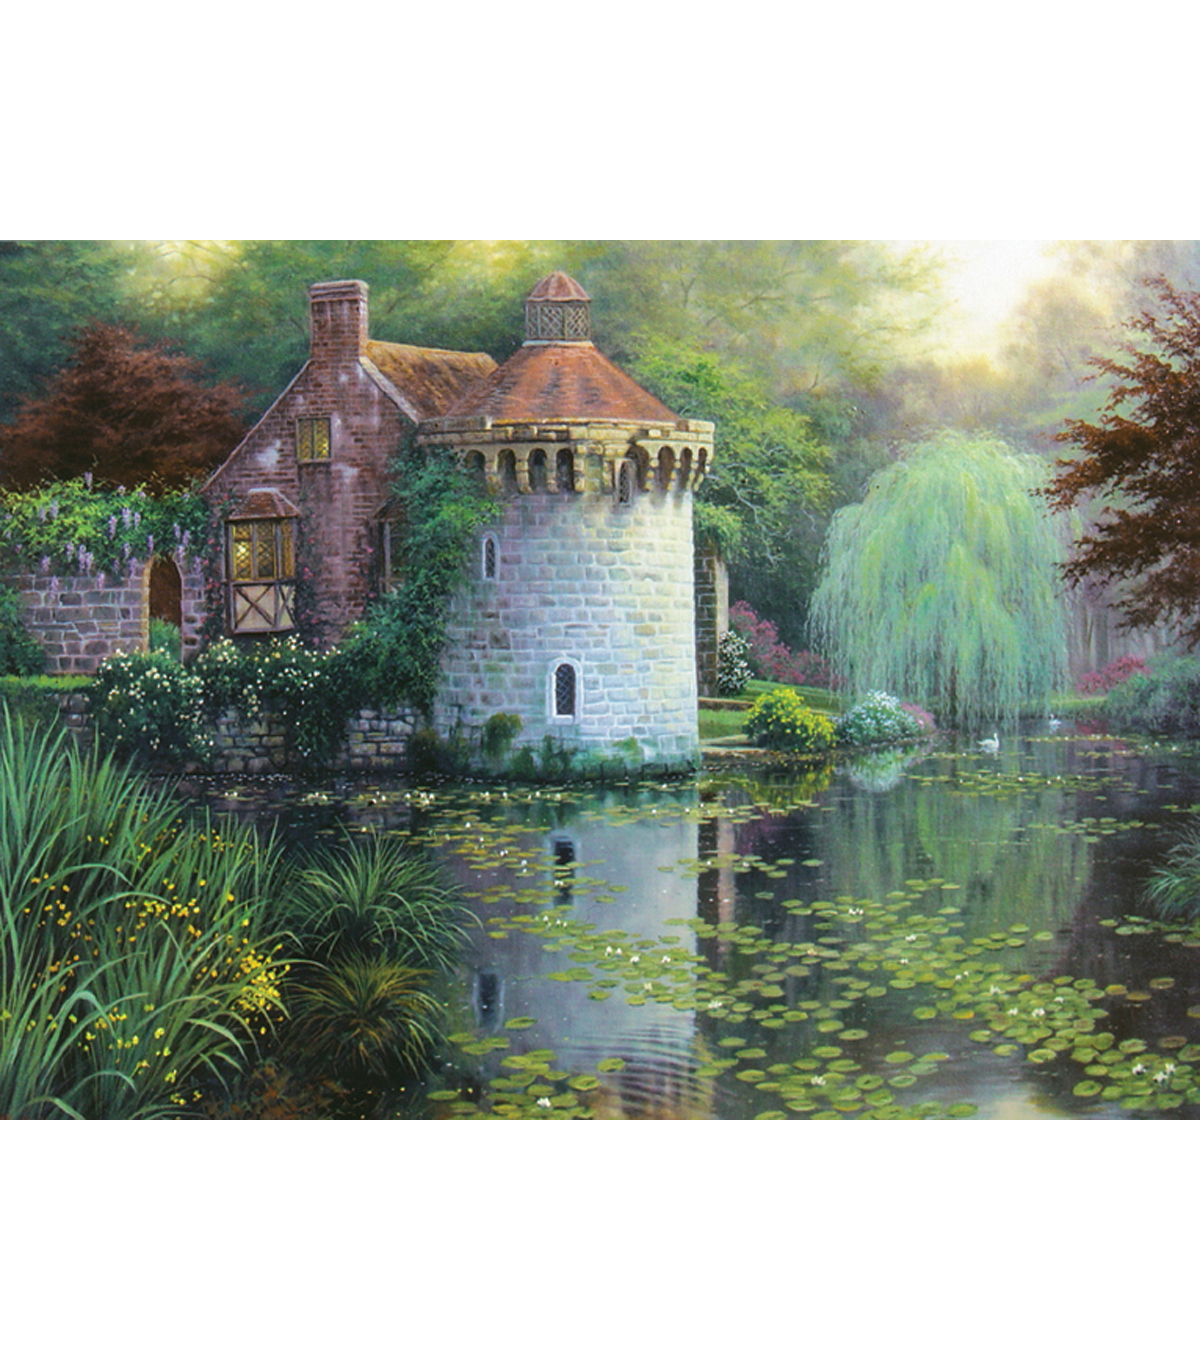 Candamar Scotney Castle Garden Counted Cross Stitch Kit